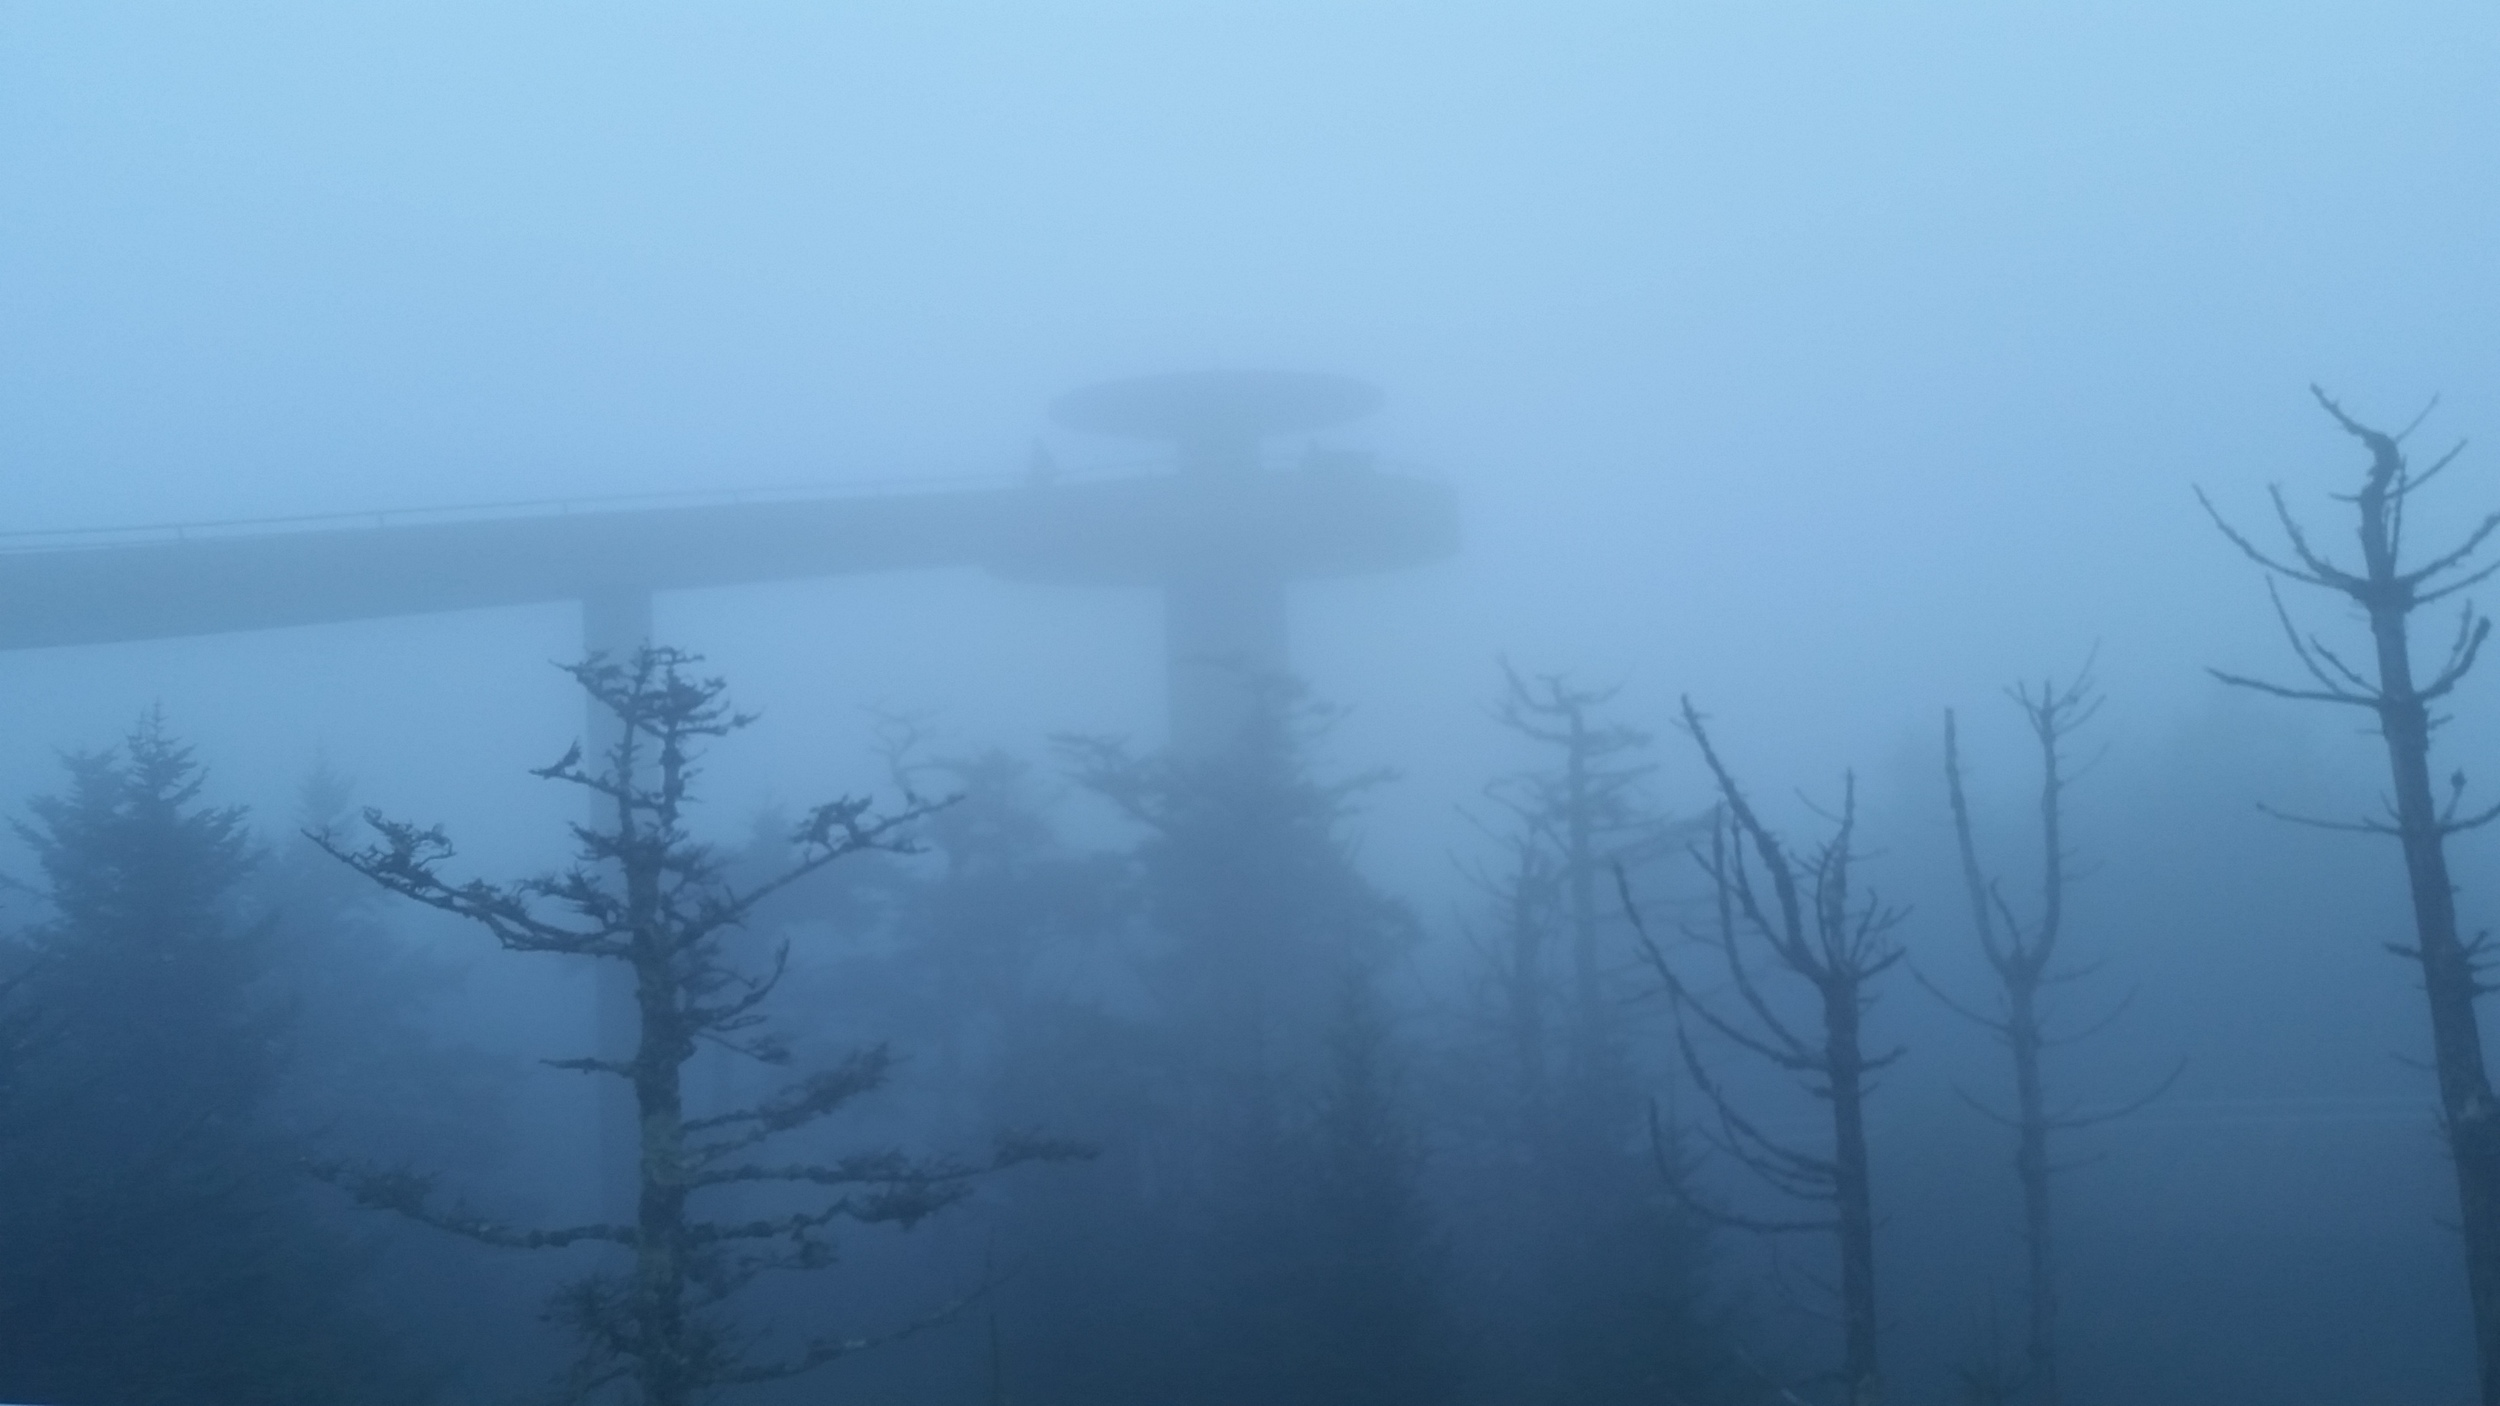 An outtake from   Myst  . JK, this is   Clingman's Dome  , an observation tower at the highest point in the Smoky Mountains. So high that it was inside a cloud. As in, we literally drove through a cloud to get to it, hence the eerie, misty pic.